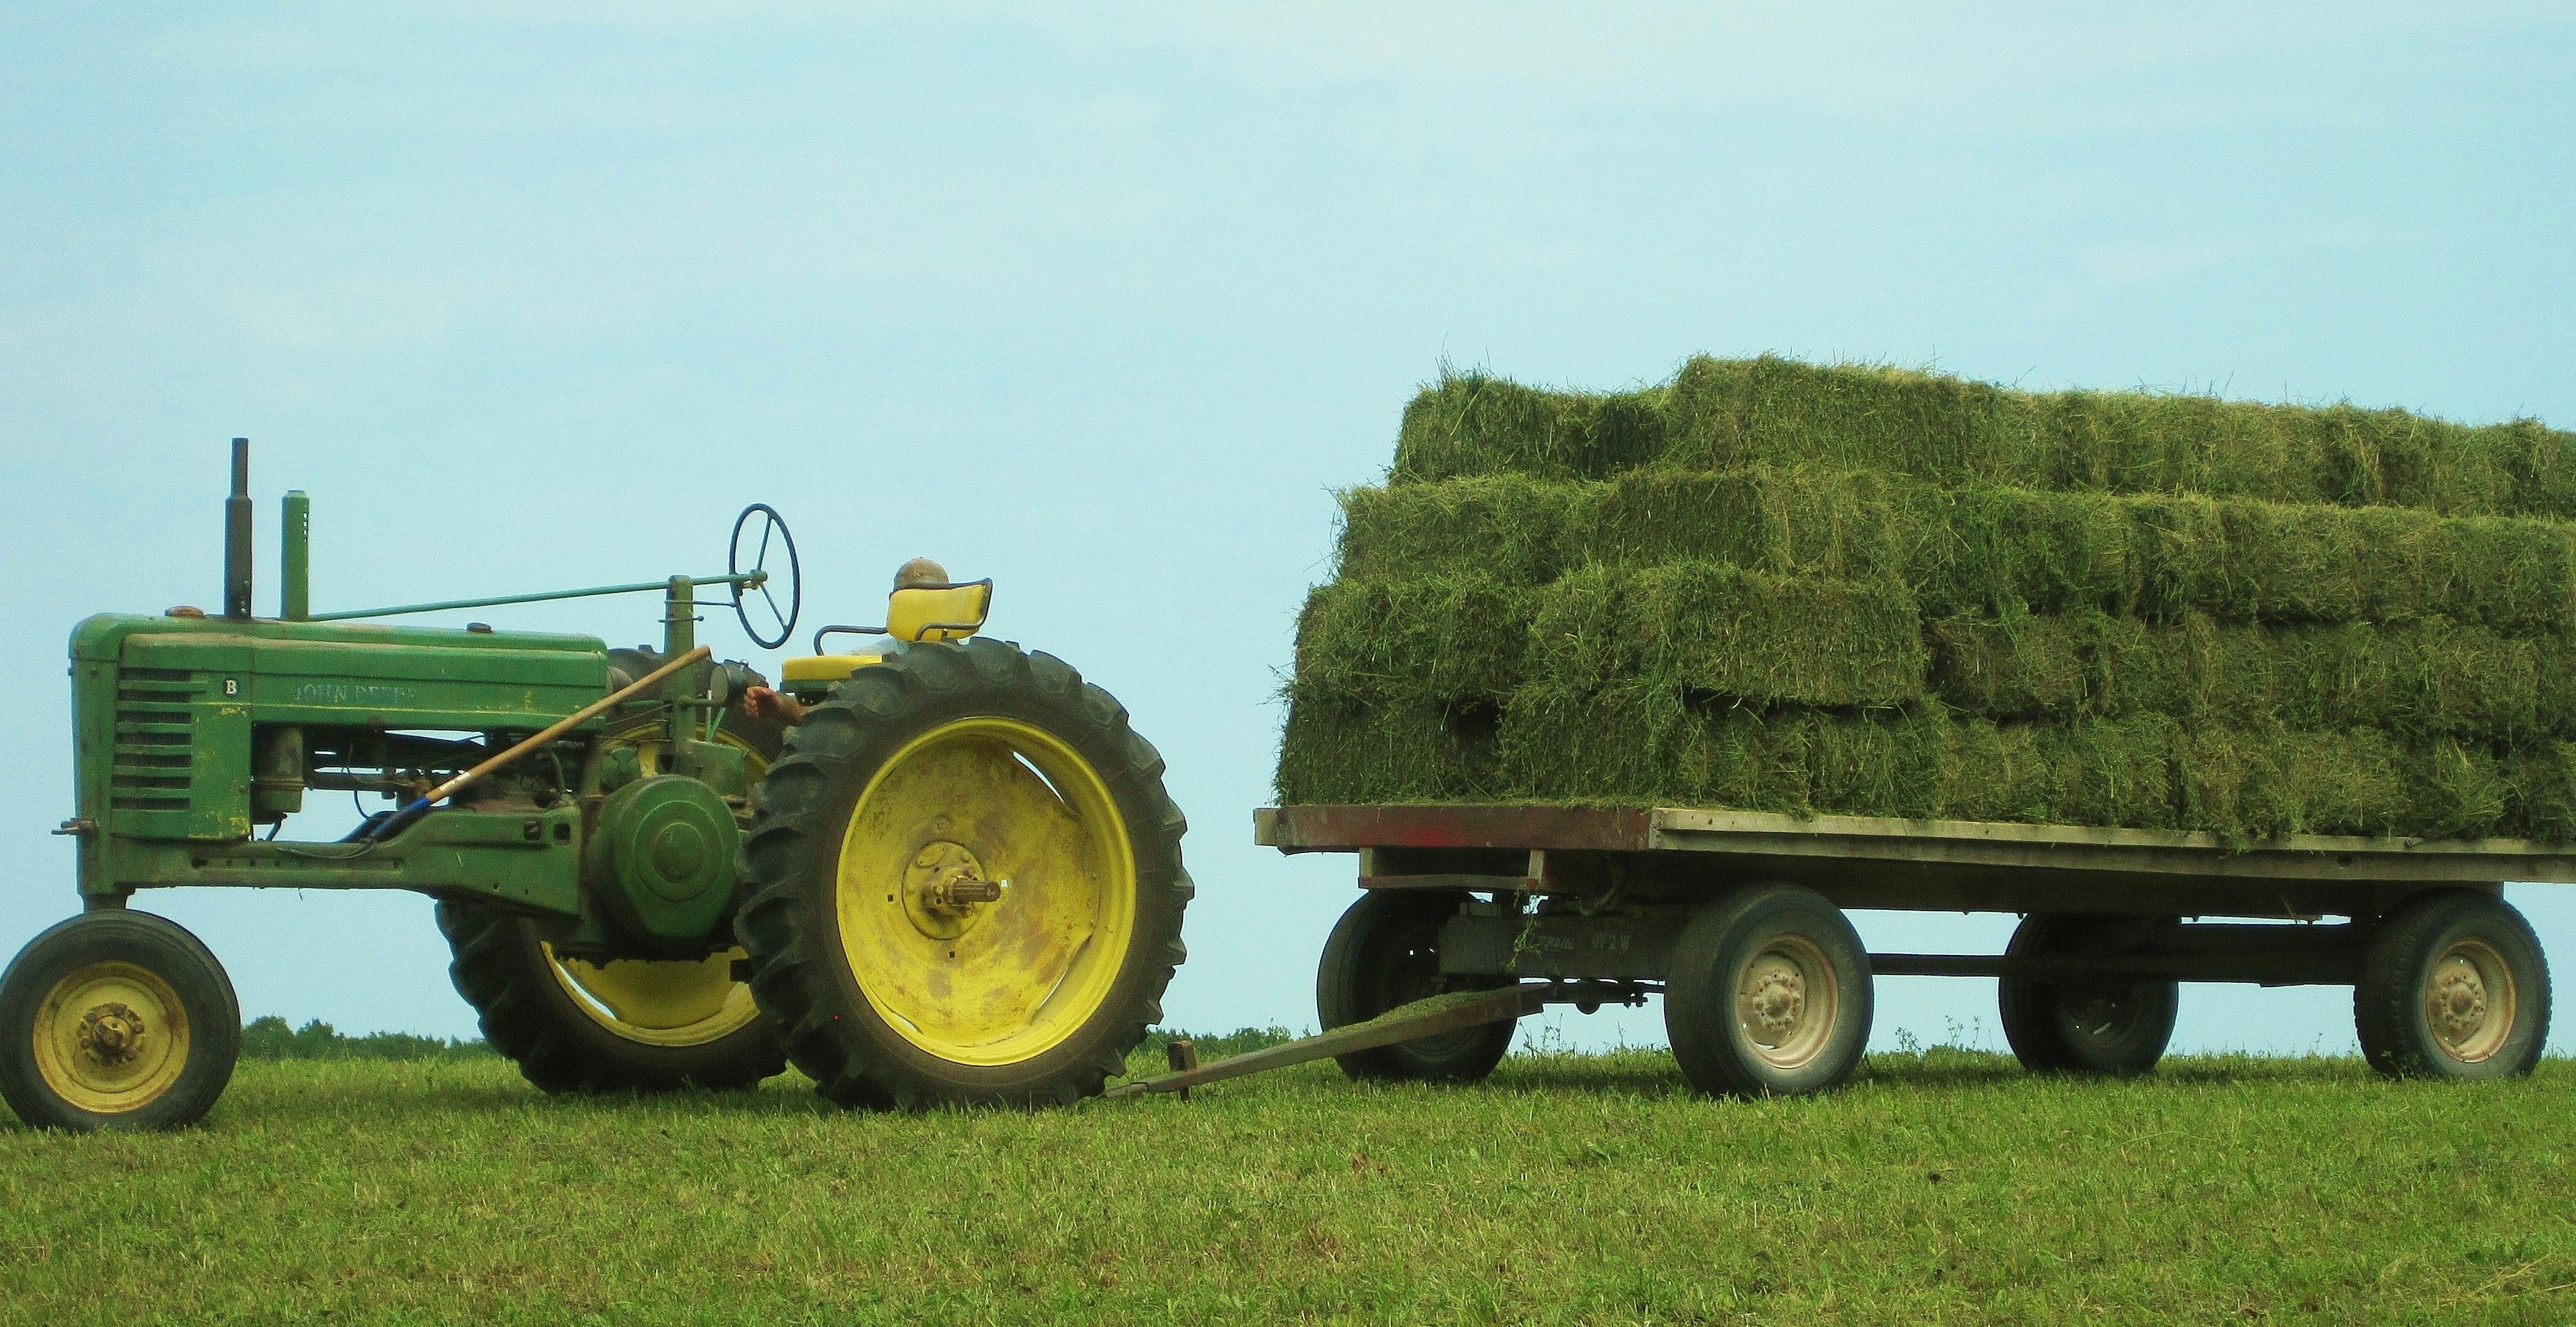 John Deere B and loaded hay wagon